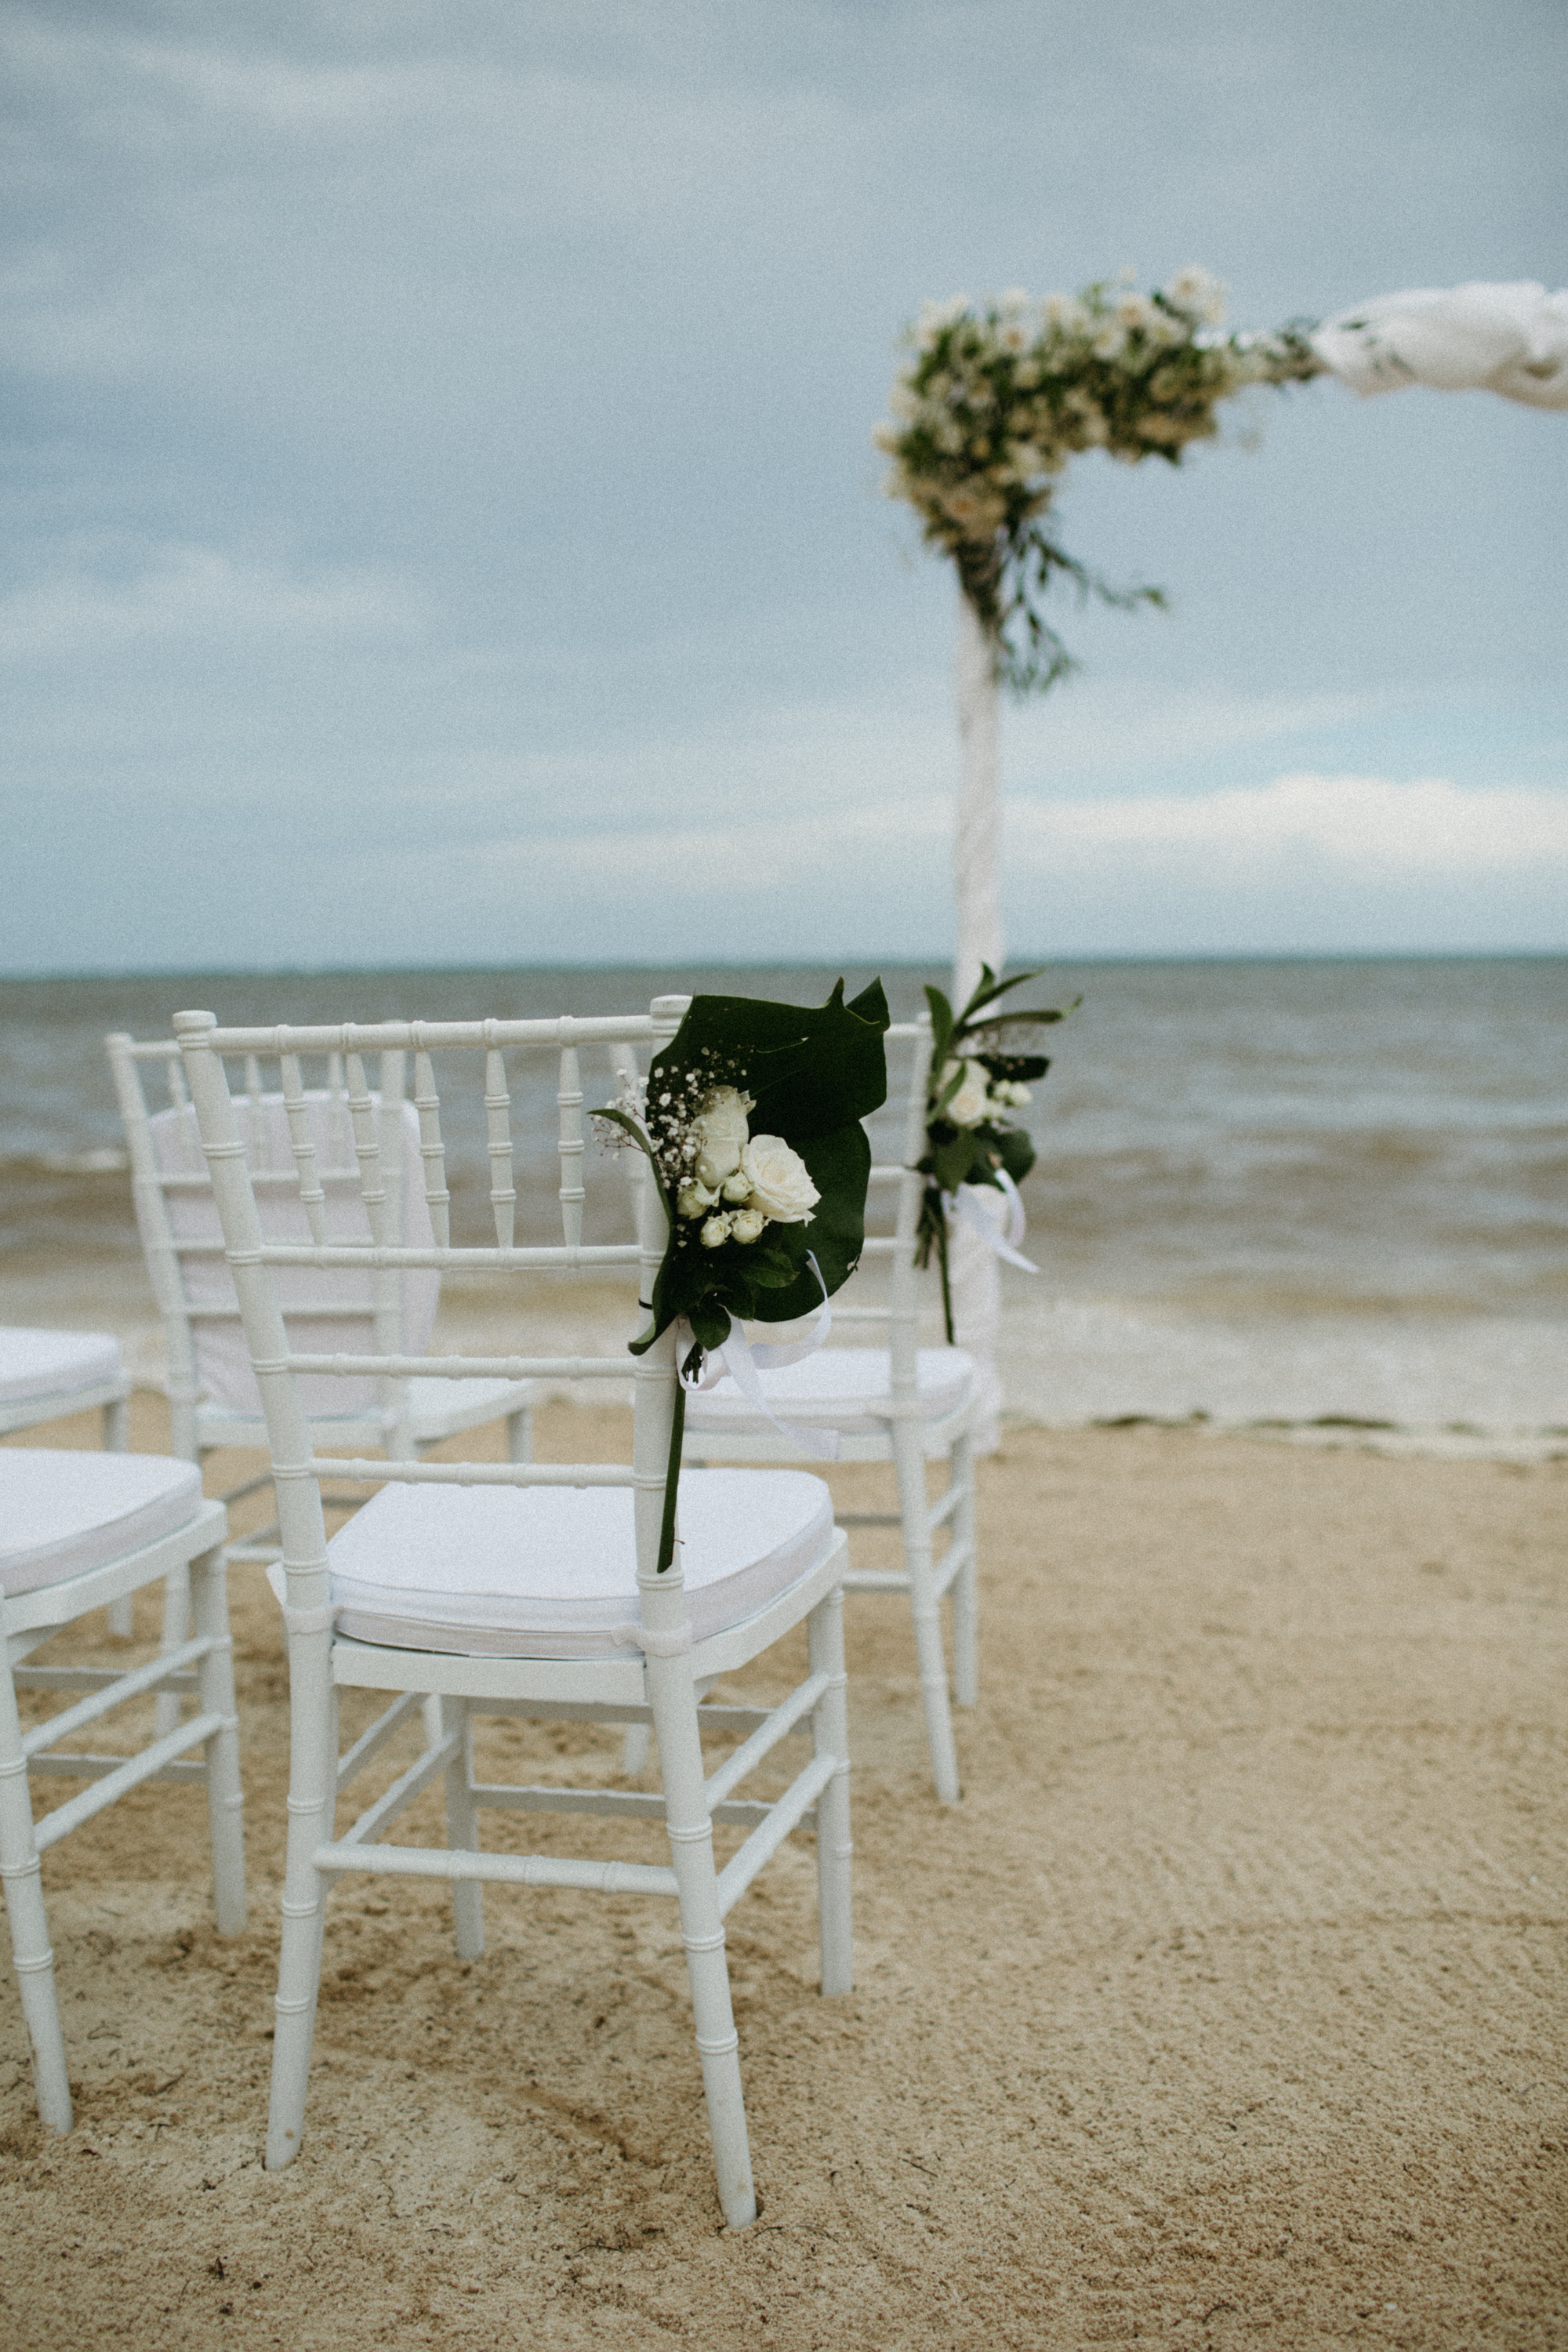 san-pescador-belize-wedding-christinemariephoto-j-k-70.jpg